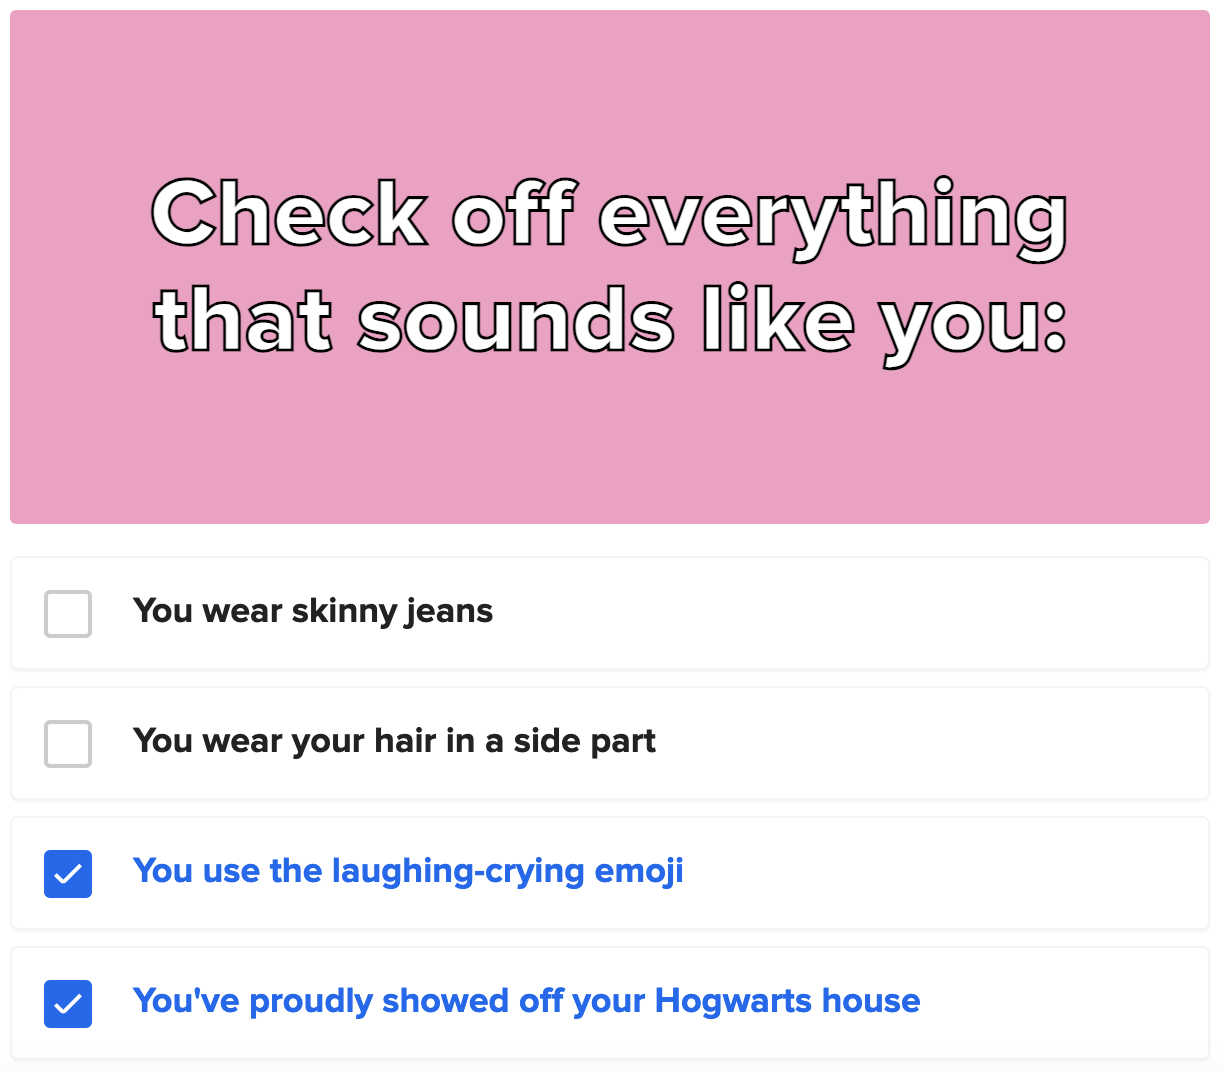 """A quiz question asking how many """"uncool"""" things you still do like using the laughing-crying emoji"""